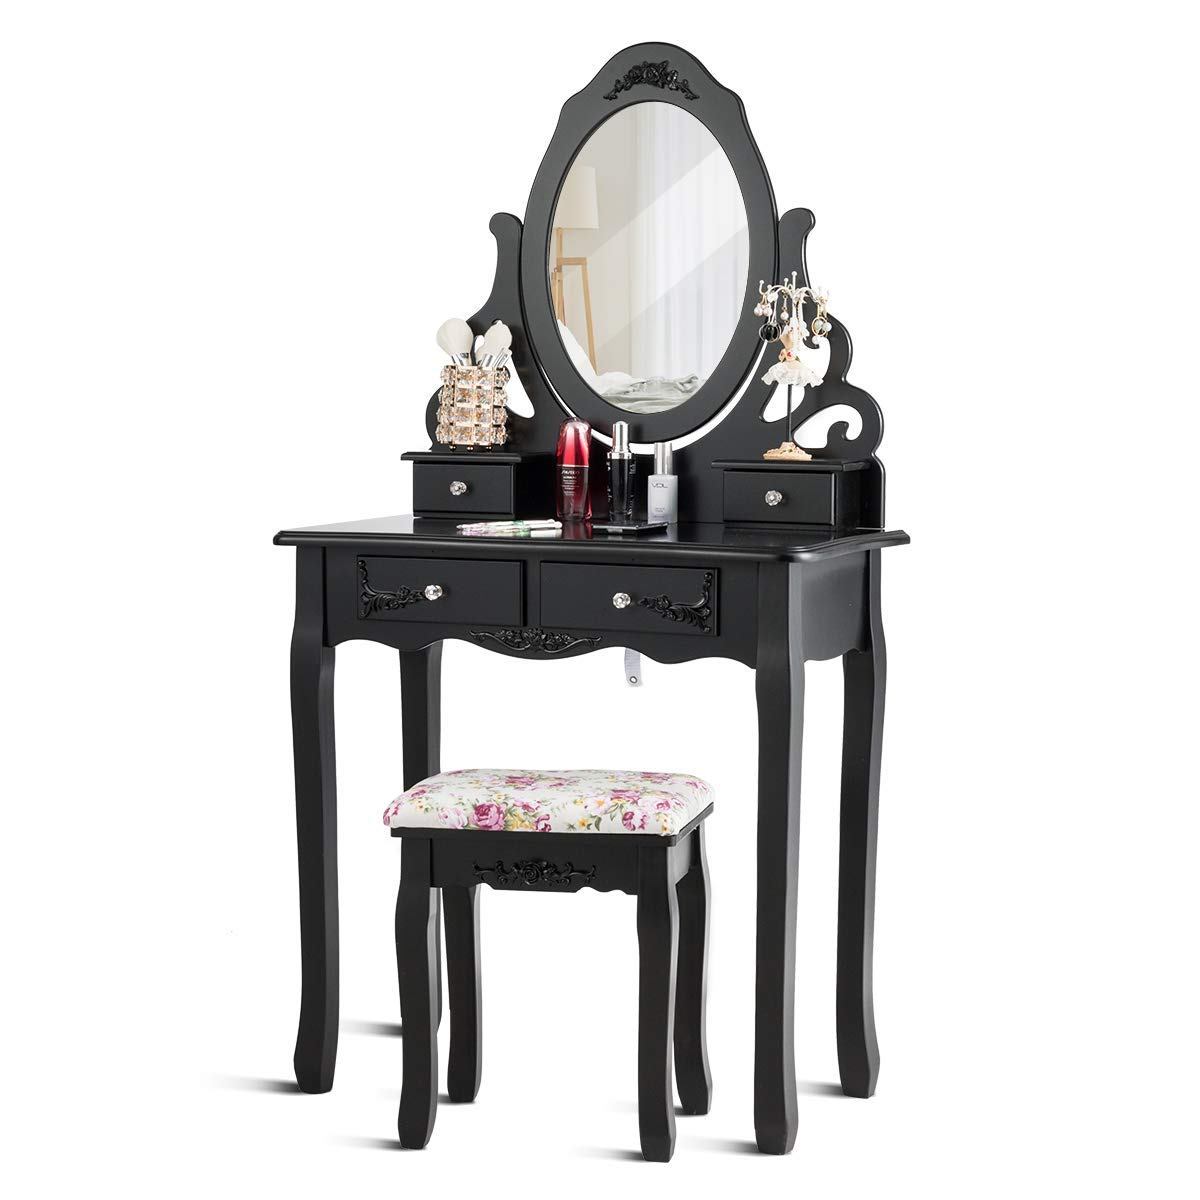 Giantex Vanity Dressing Table with Mirror and Stool, 360 Rotating Oval Makeup Mirror Classic Style Delicate Carved Cushioned Benches Wood Legs, Vanity Tables with Divided Drawers Black